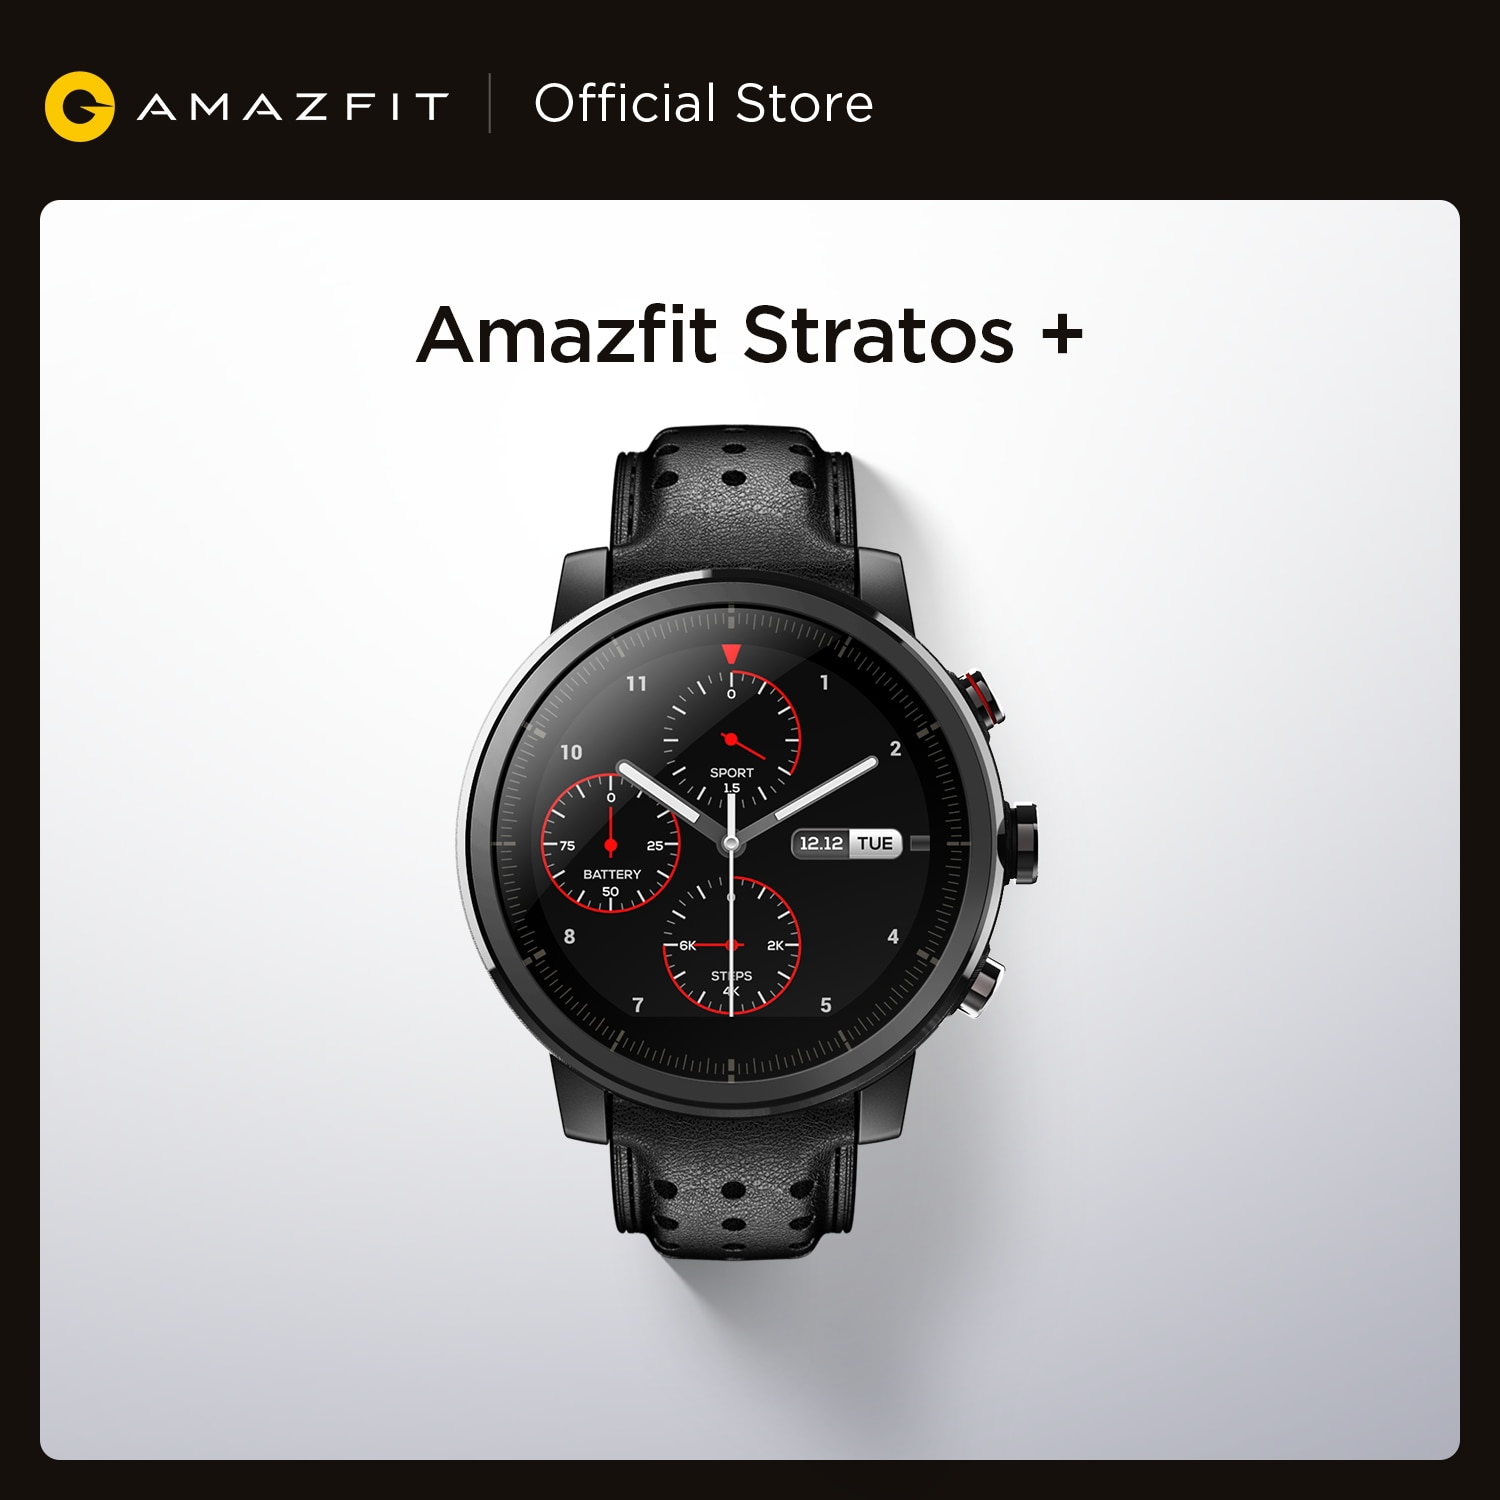 Promo In Stock Amazfit Stratos+ Flagship Smart Watch Genuine Leather Strap Sapphire Glass Flourorubber Strap for Android Phone